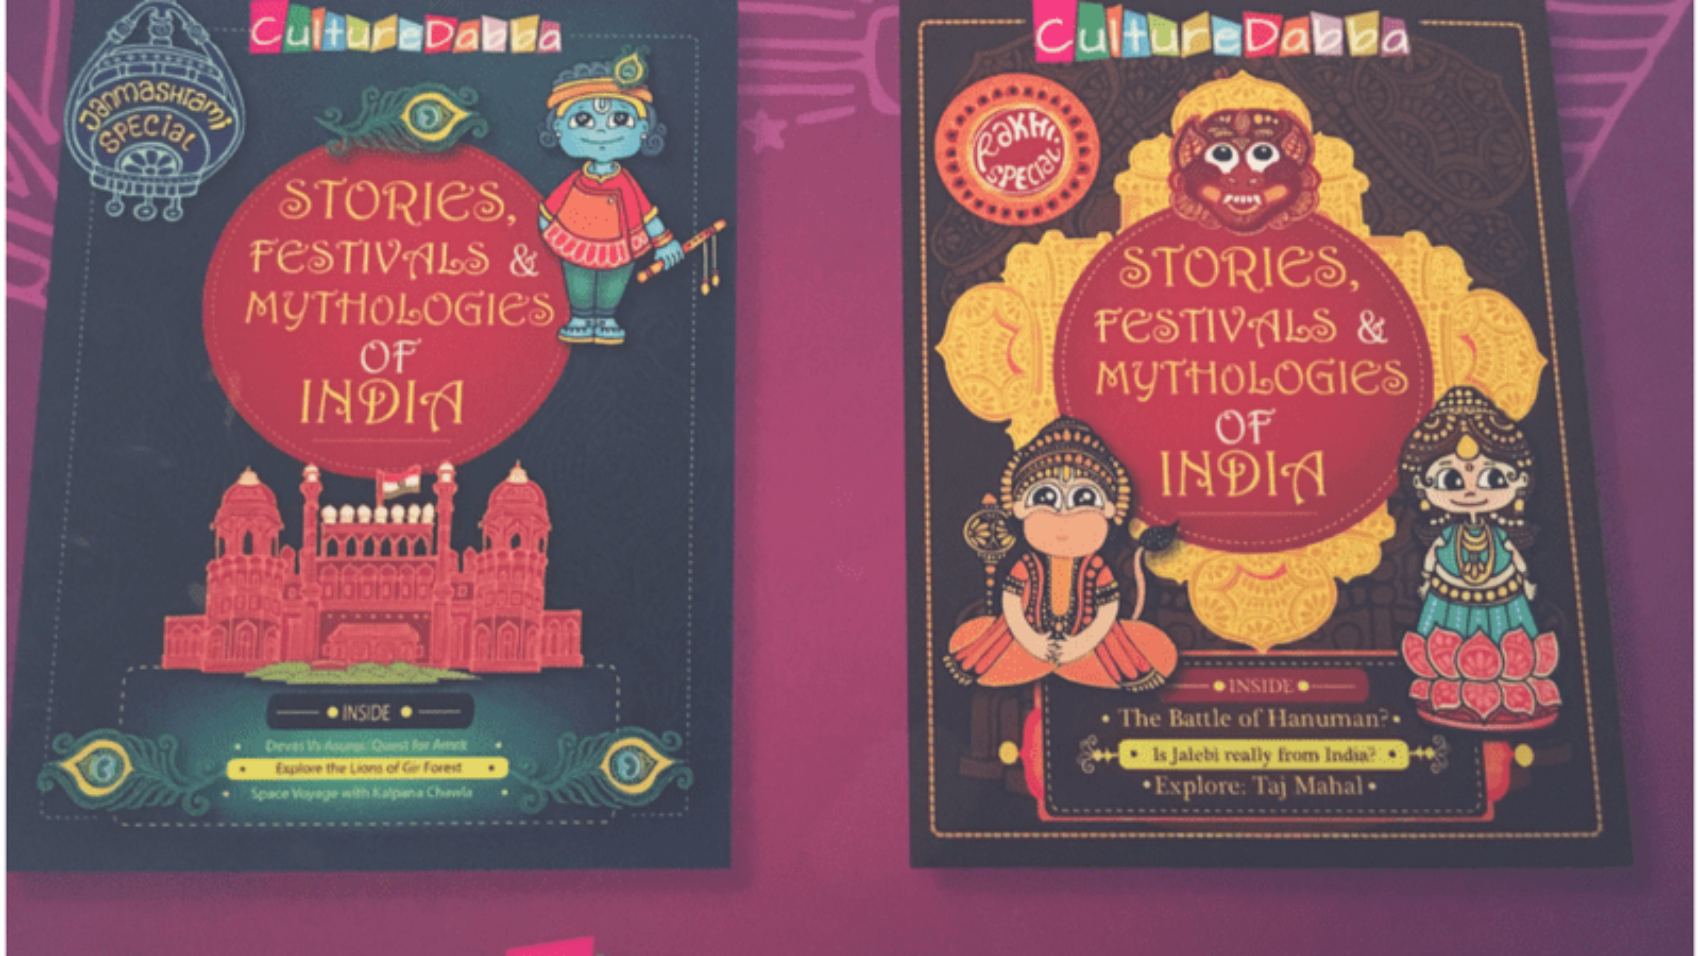 Making Diwali Special With CultureDabba - Giveaway